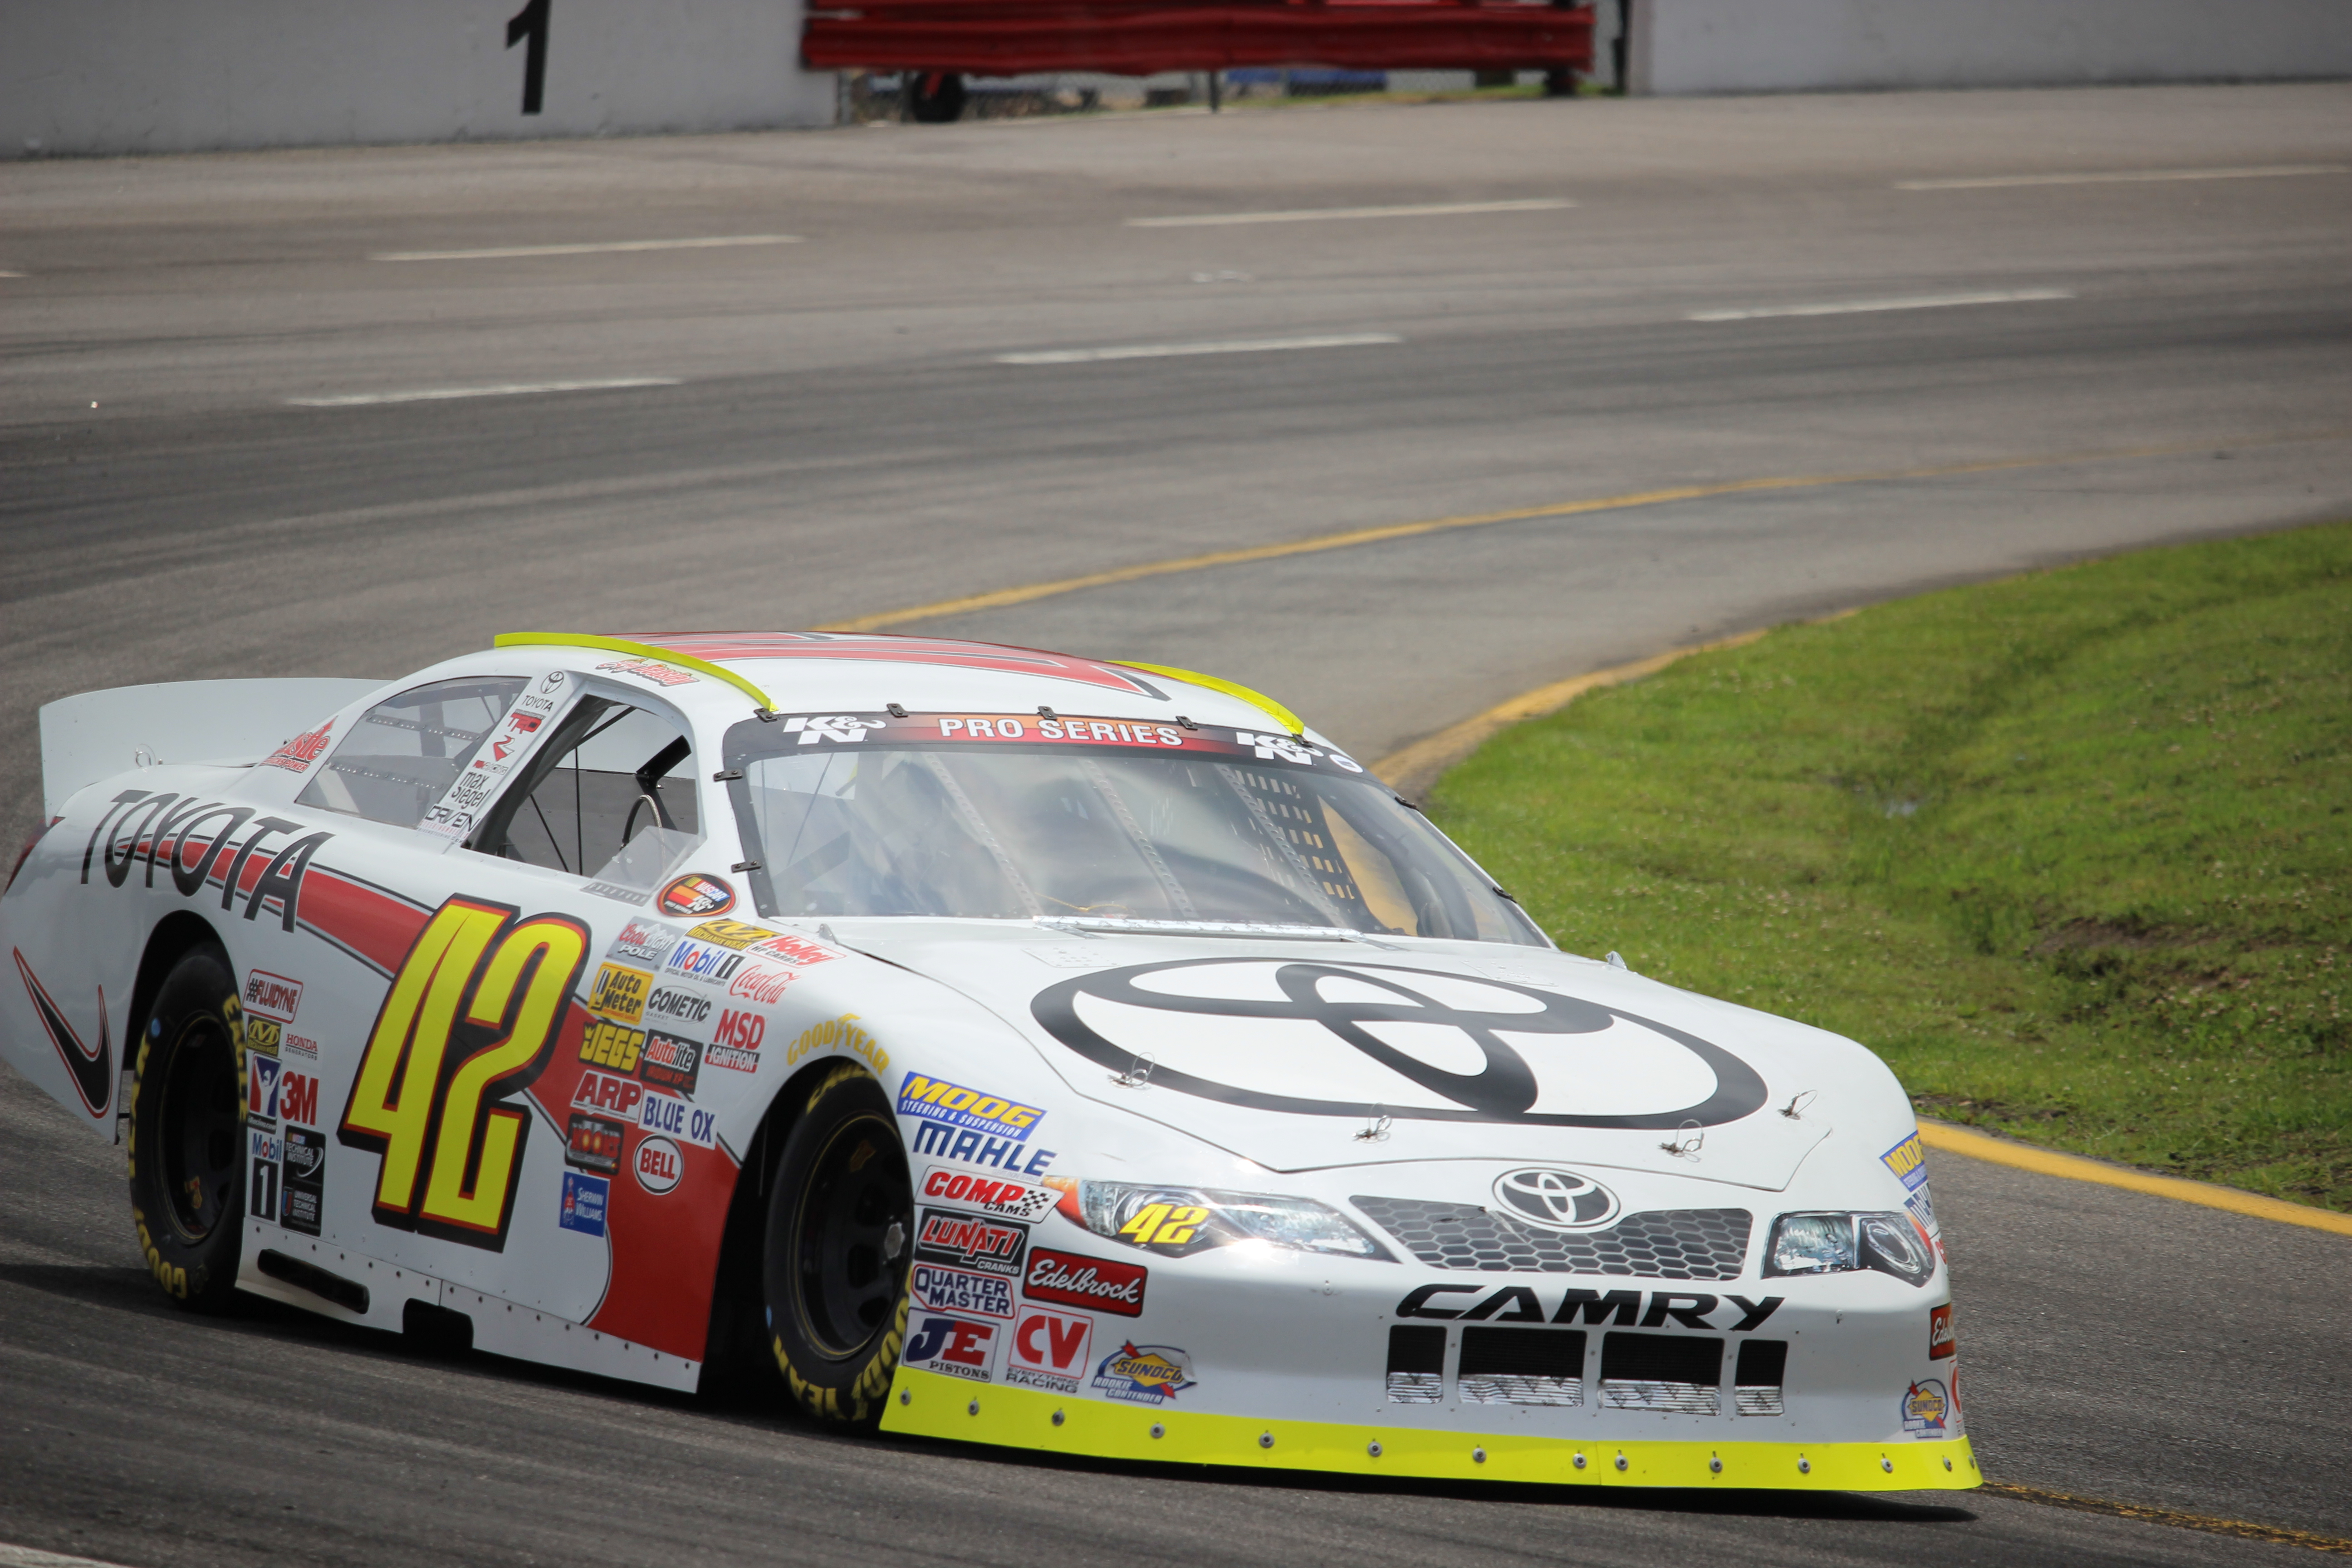 About Us – Larry King Law's Langley Speedway